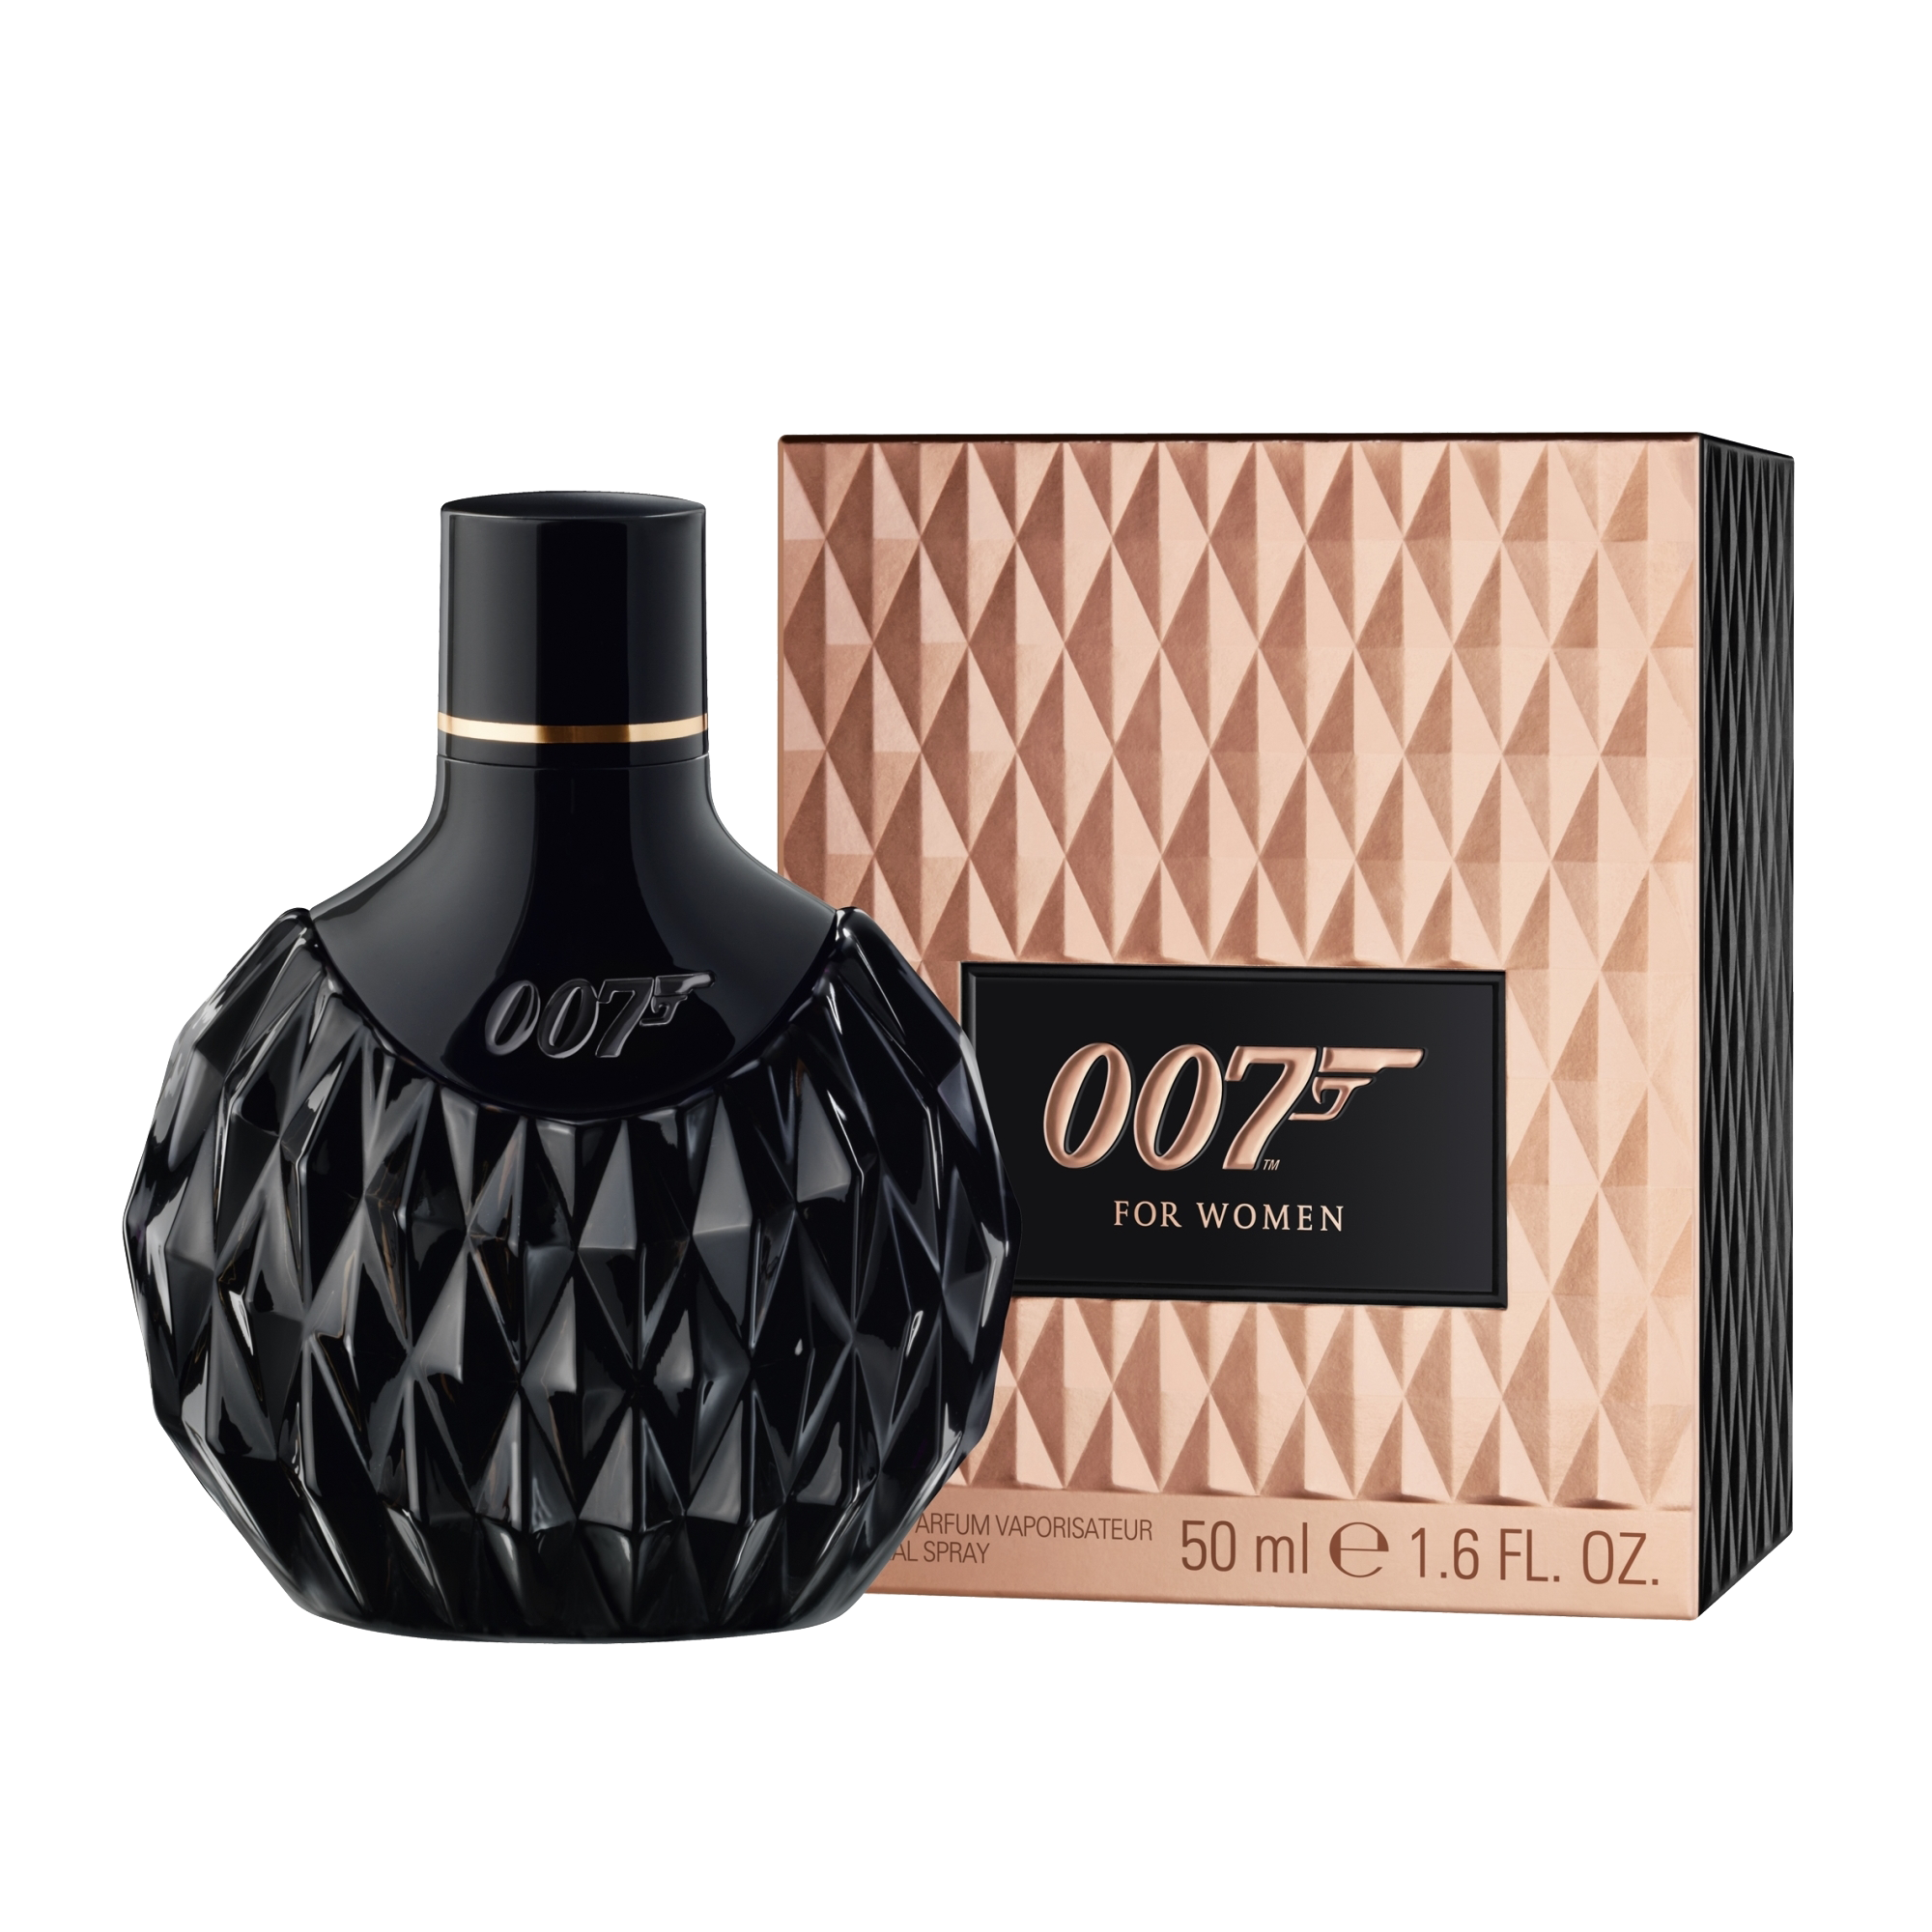 007 007 for Women II EdP 50ml • Se pris (13 butiker) hos